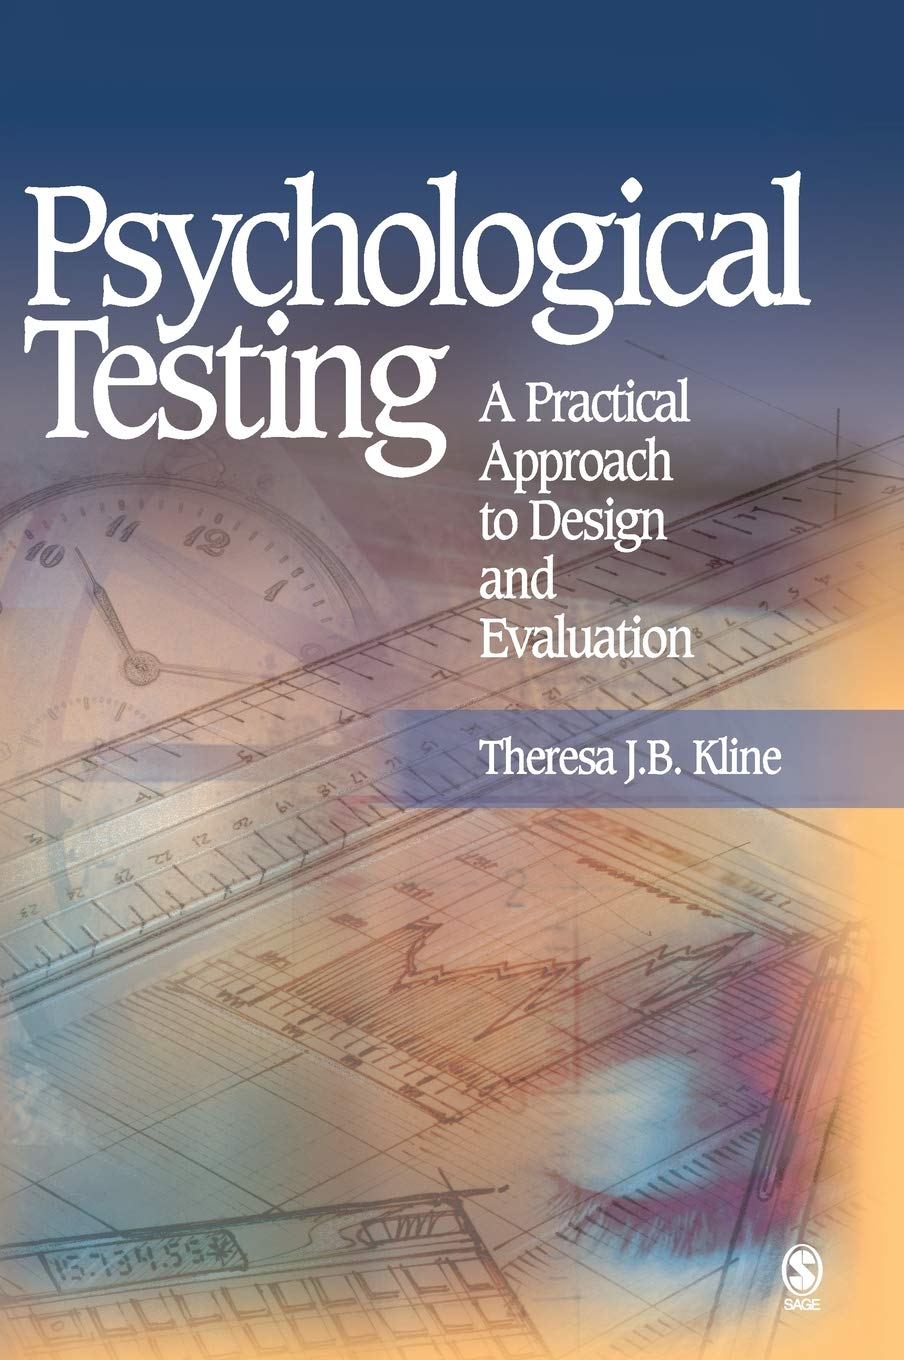 Psychological Testing: A Practical Approach to